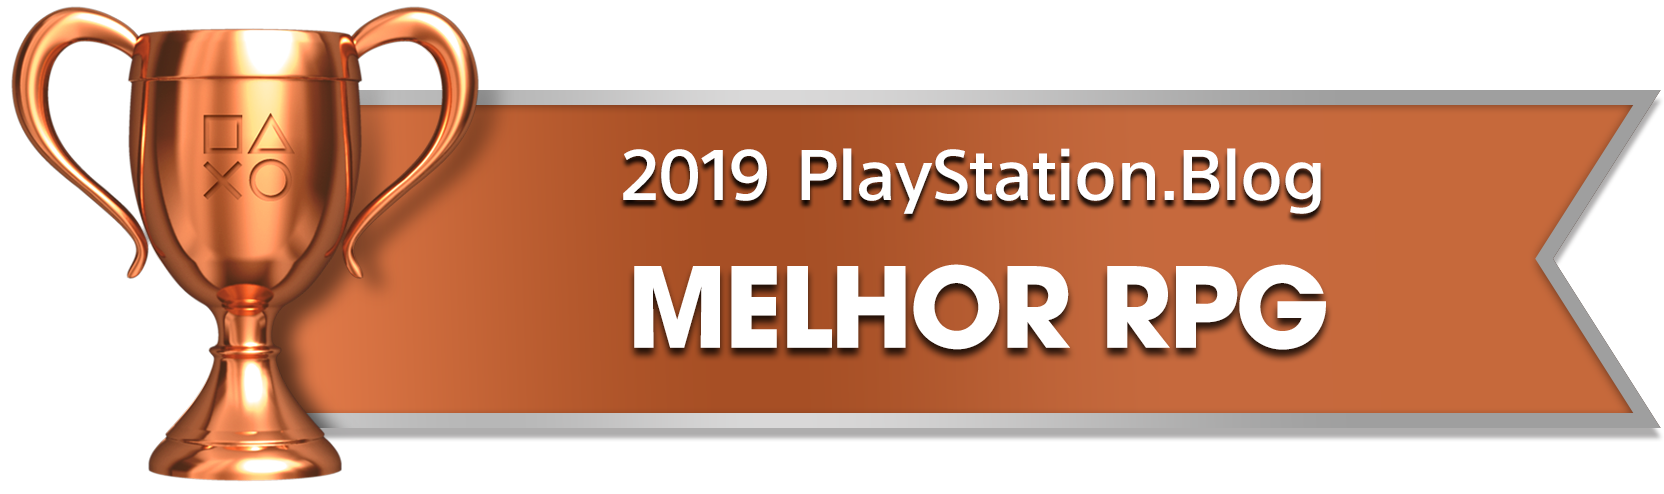 PS Blog Game of the Year 2019 - Best Role-Playing Game - 4 - Bronze